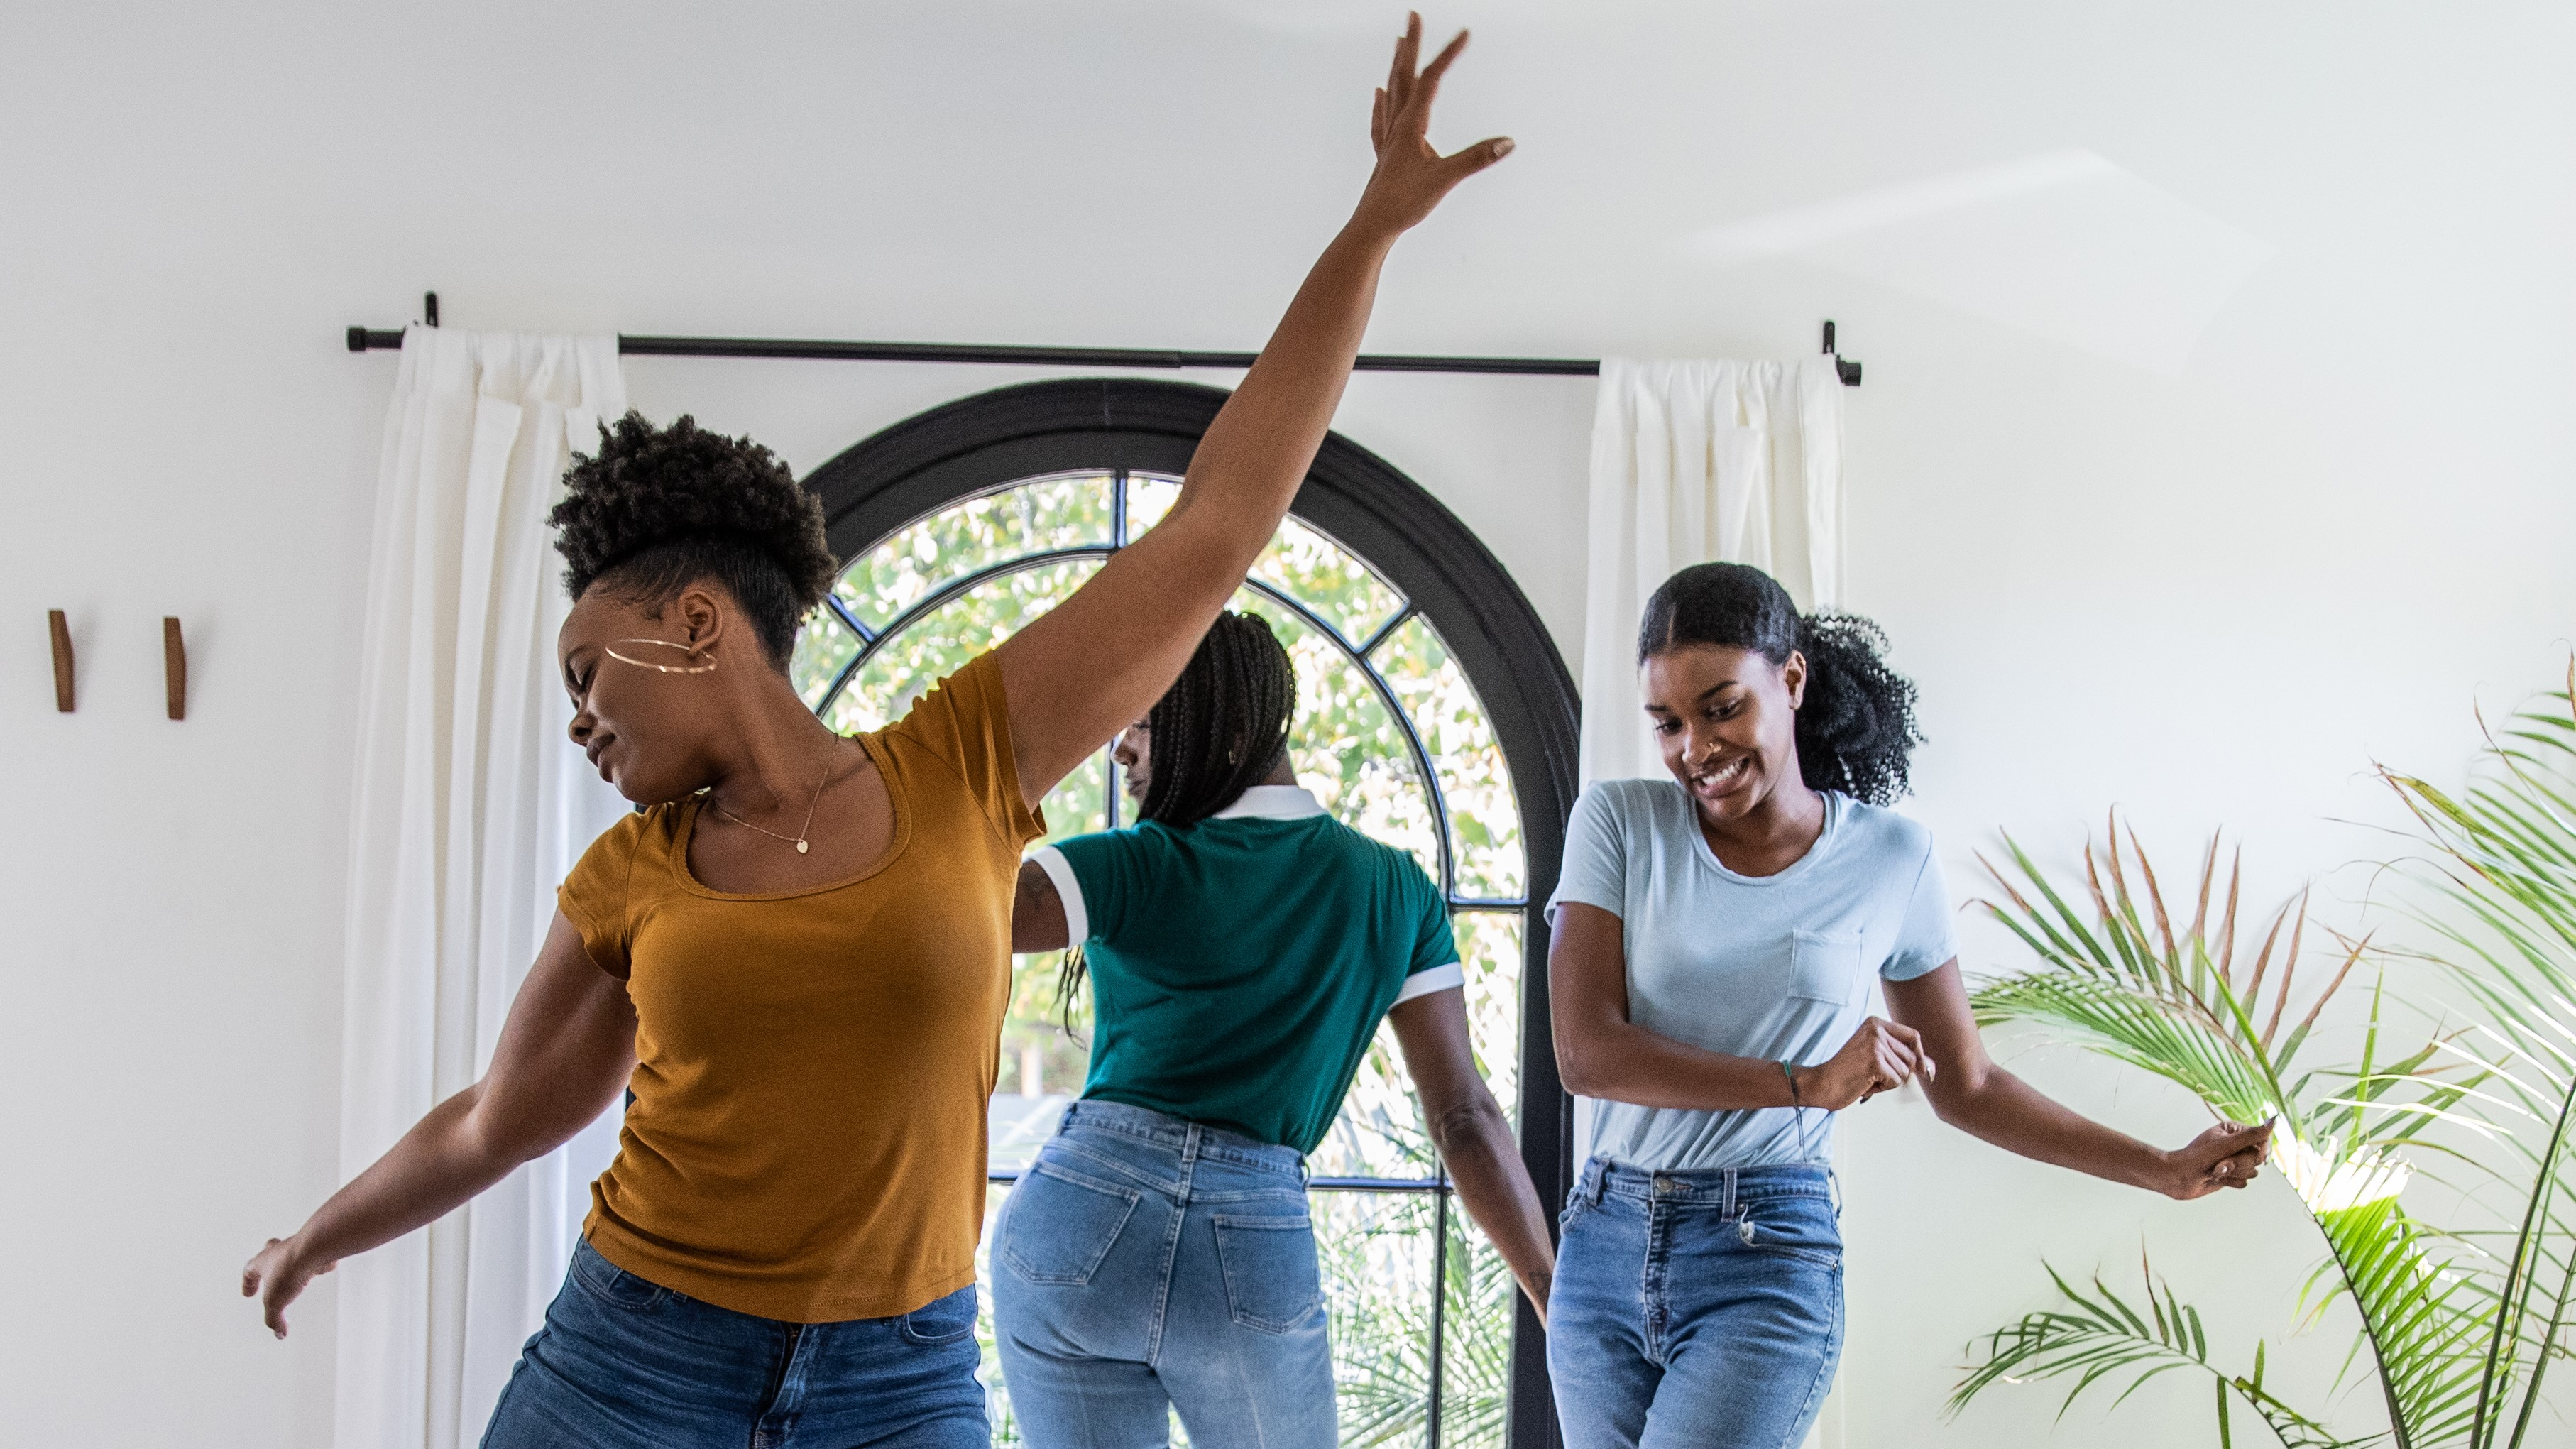 Dance Party Image